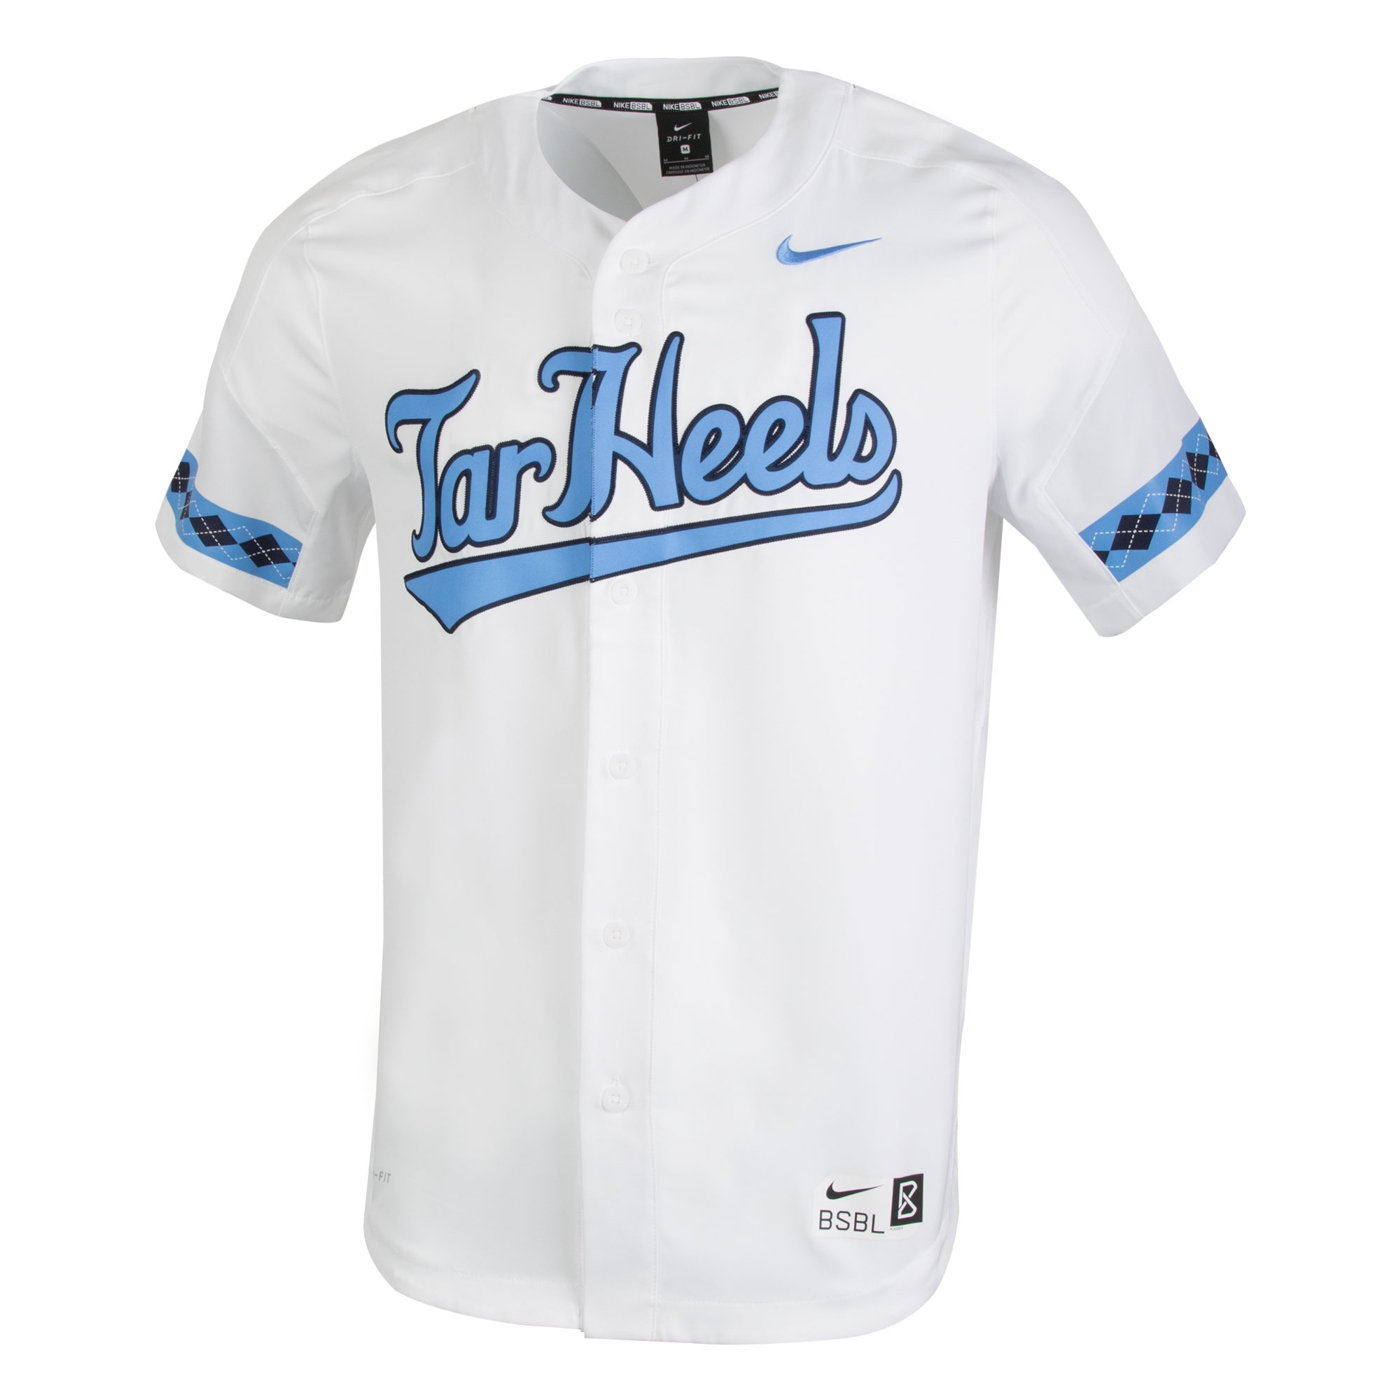 On Collection Our Eligible Unc Shop And Free Jersey Returns Shipping Items Baseball Jersey Of Awesome